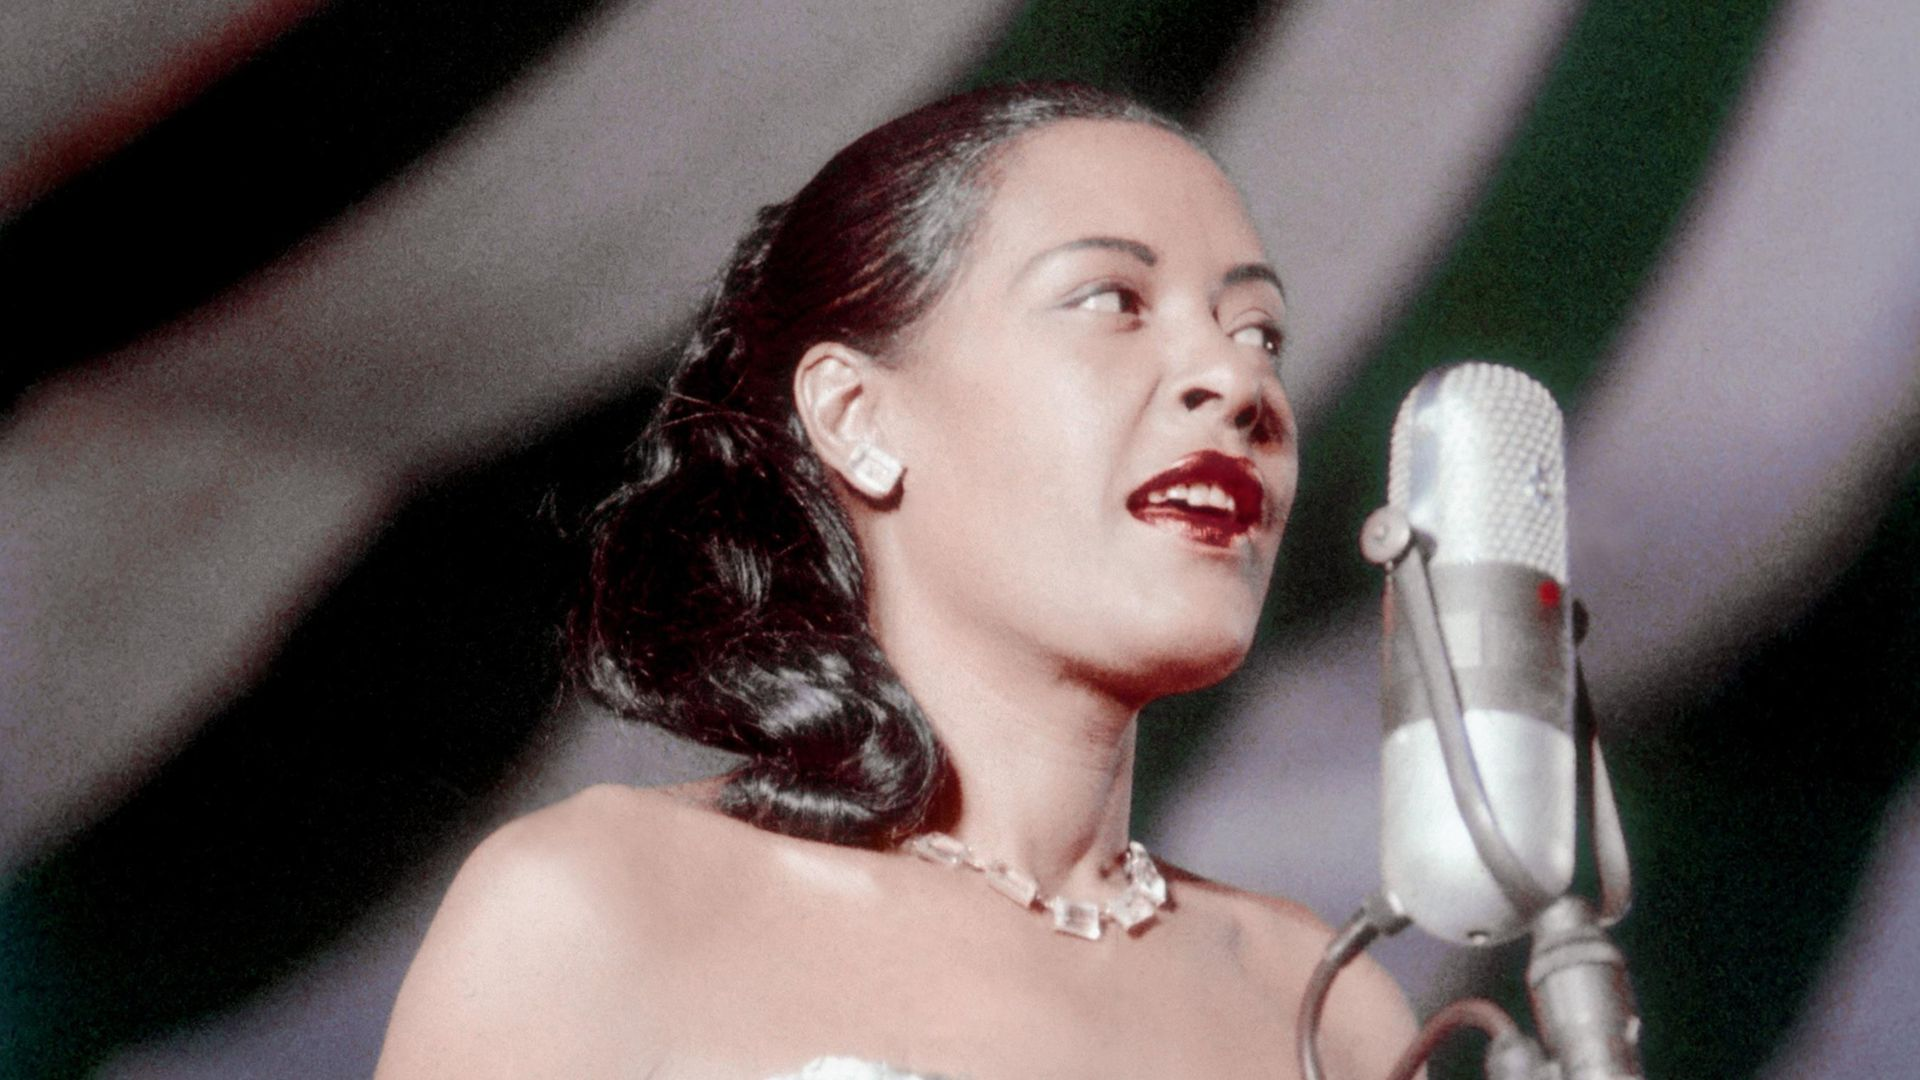 Billie Holiday performs at the Newport Jazz festival in Newport, Rhode Island - Credit: Photo by Bill Spilka/Getty Images